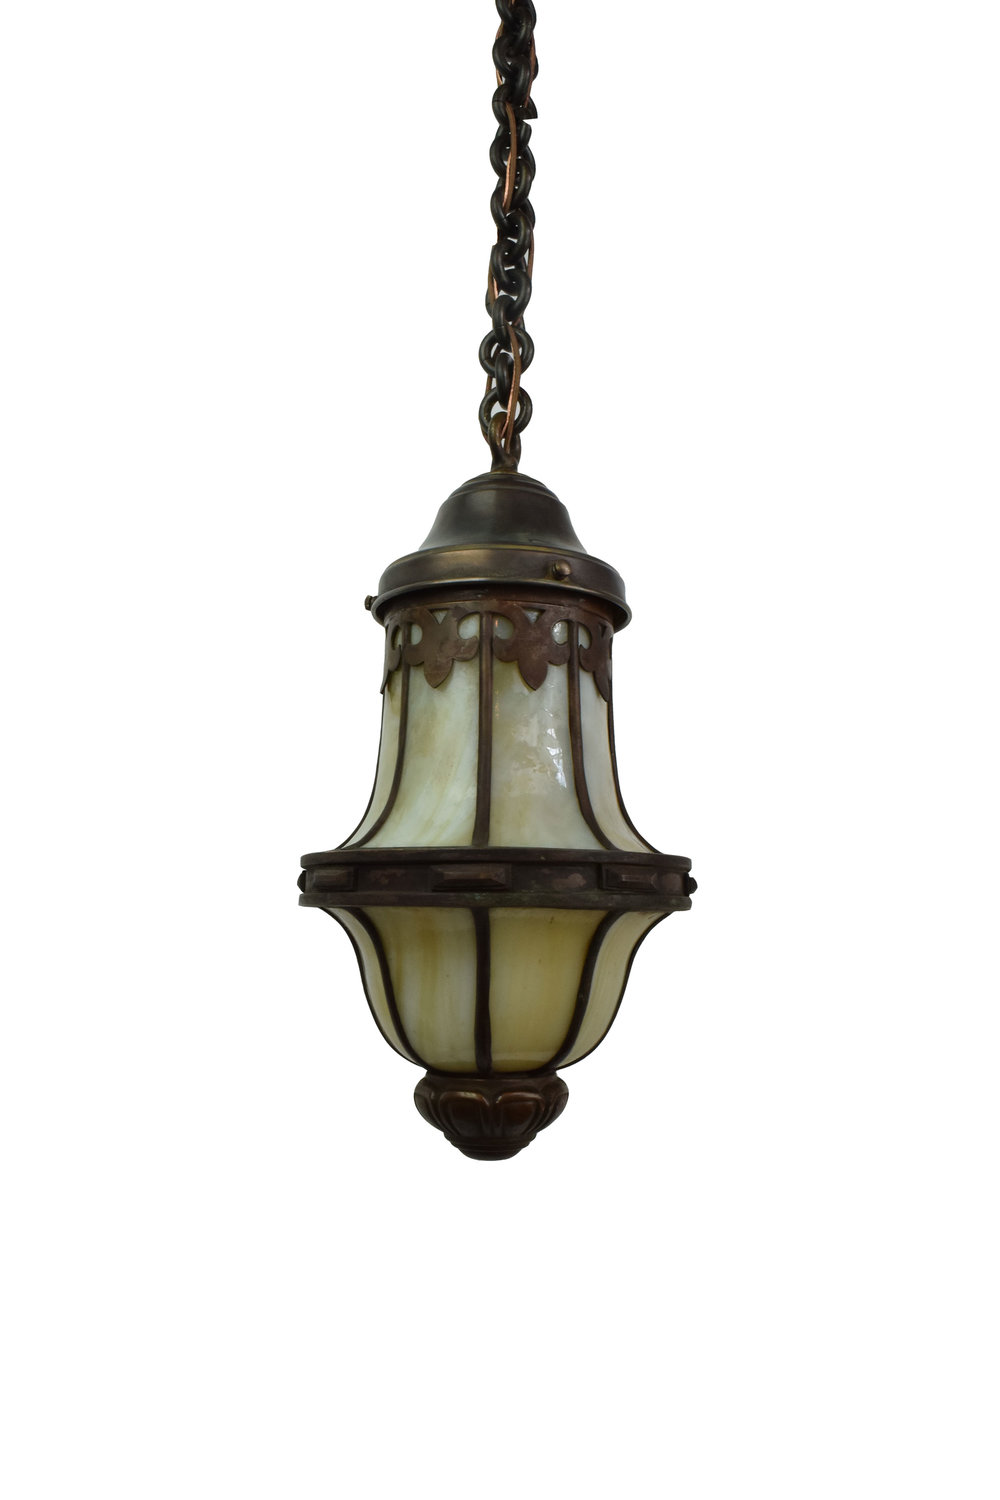 45914-bronze-glass-lantern-far.jpg